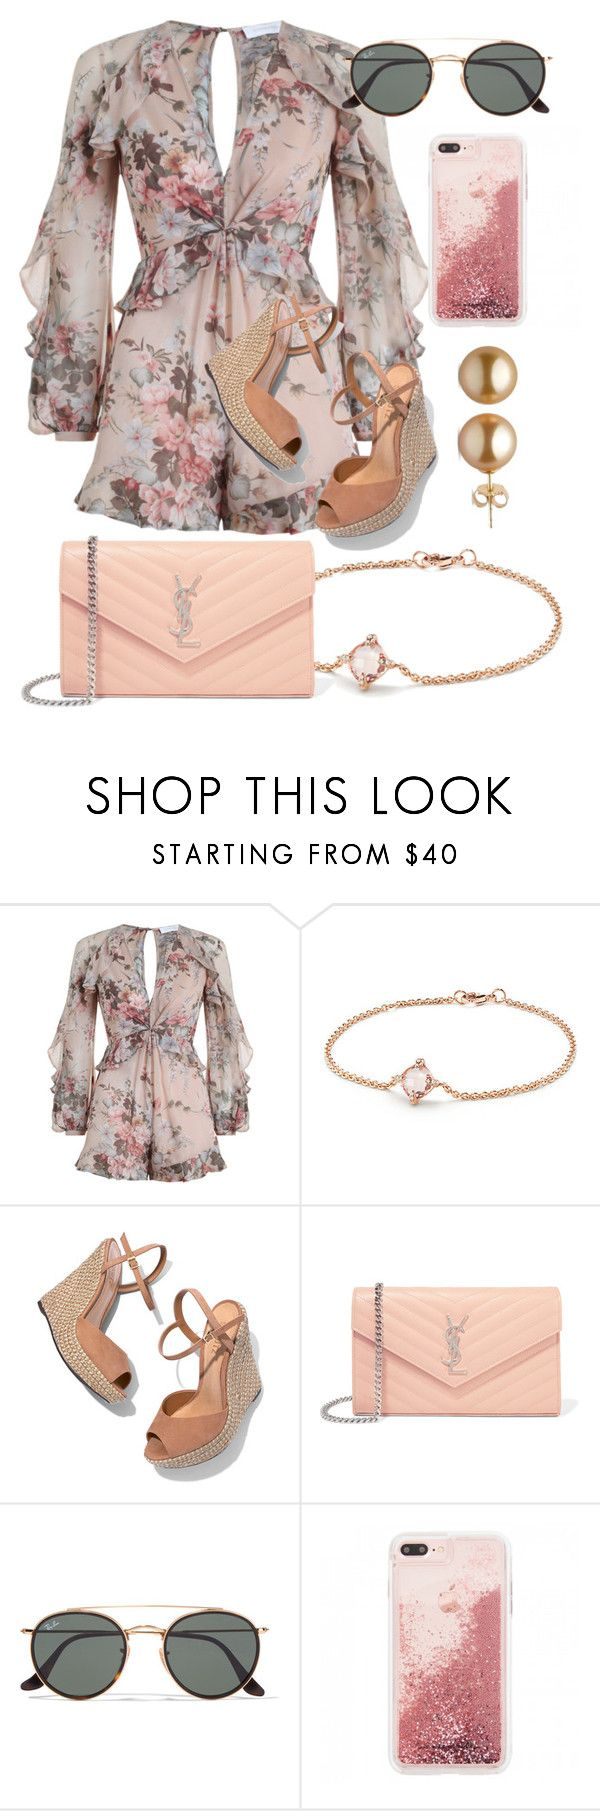 """What Should I Wear Today?"" by madisoncorell ❤ liked on Polyvore featuring Zimmermann, David Yurman, Schutz, Yves Saint Laurent and Ray-Ban"